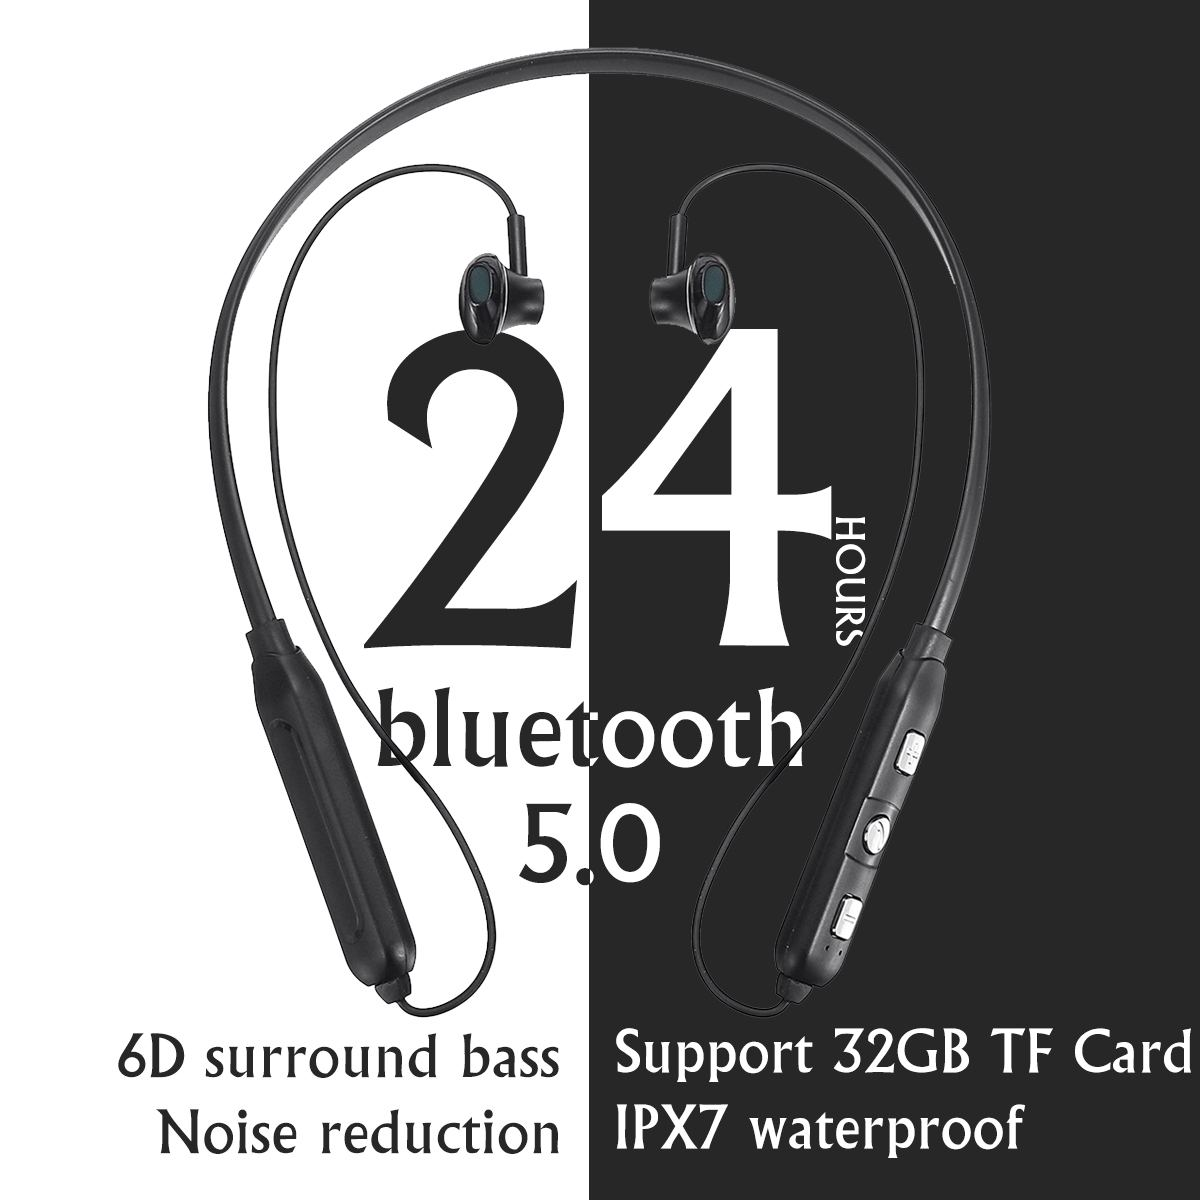 Wireless bluetooth 5.0 Sports Earbuds Stereo Bass Earphones Magnetic IPX7 Waterproof 32GB TF Card for Running Workout Gym